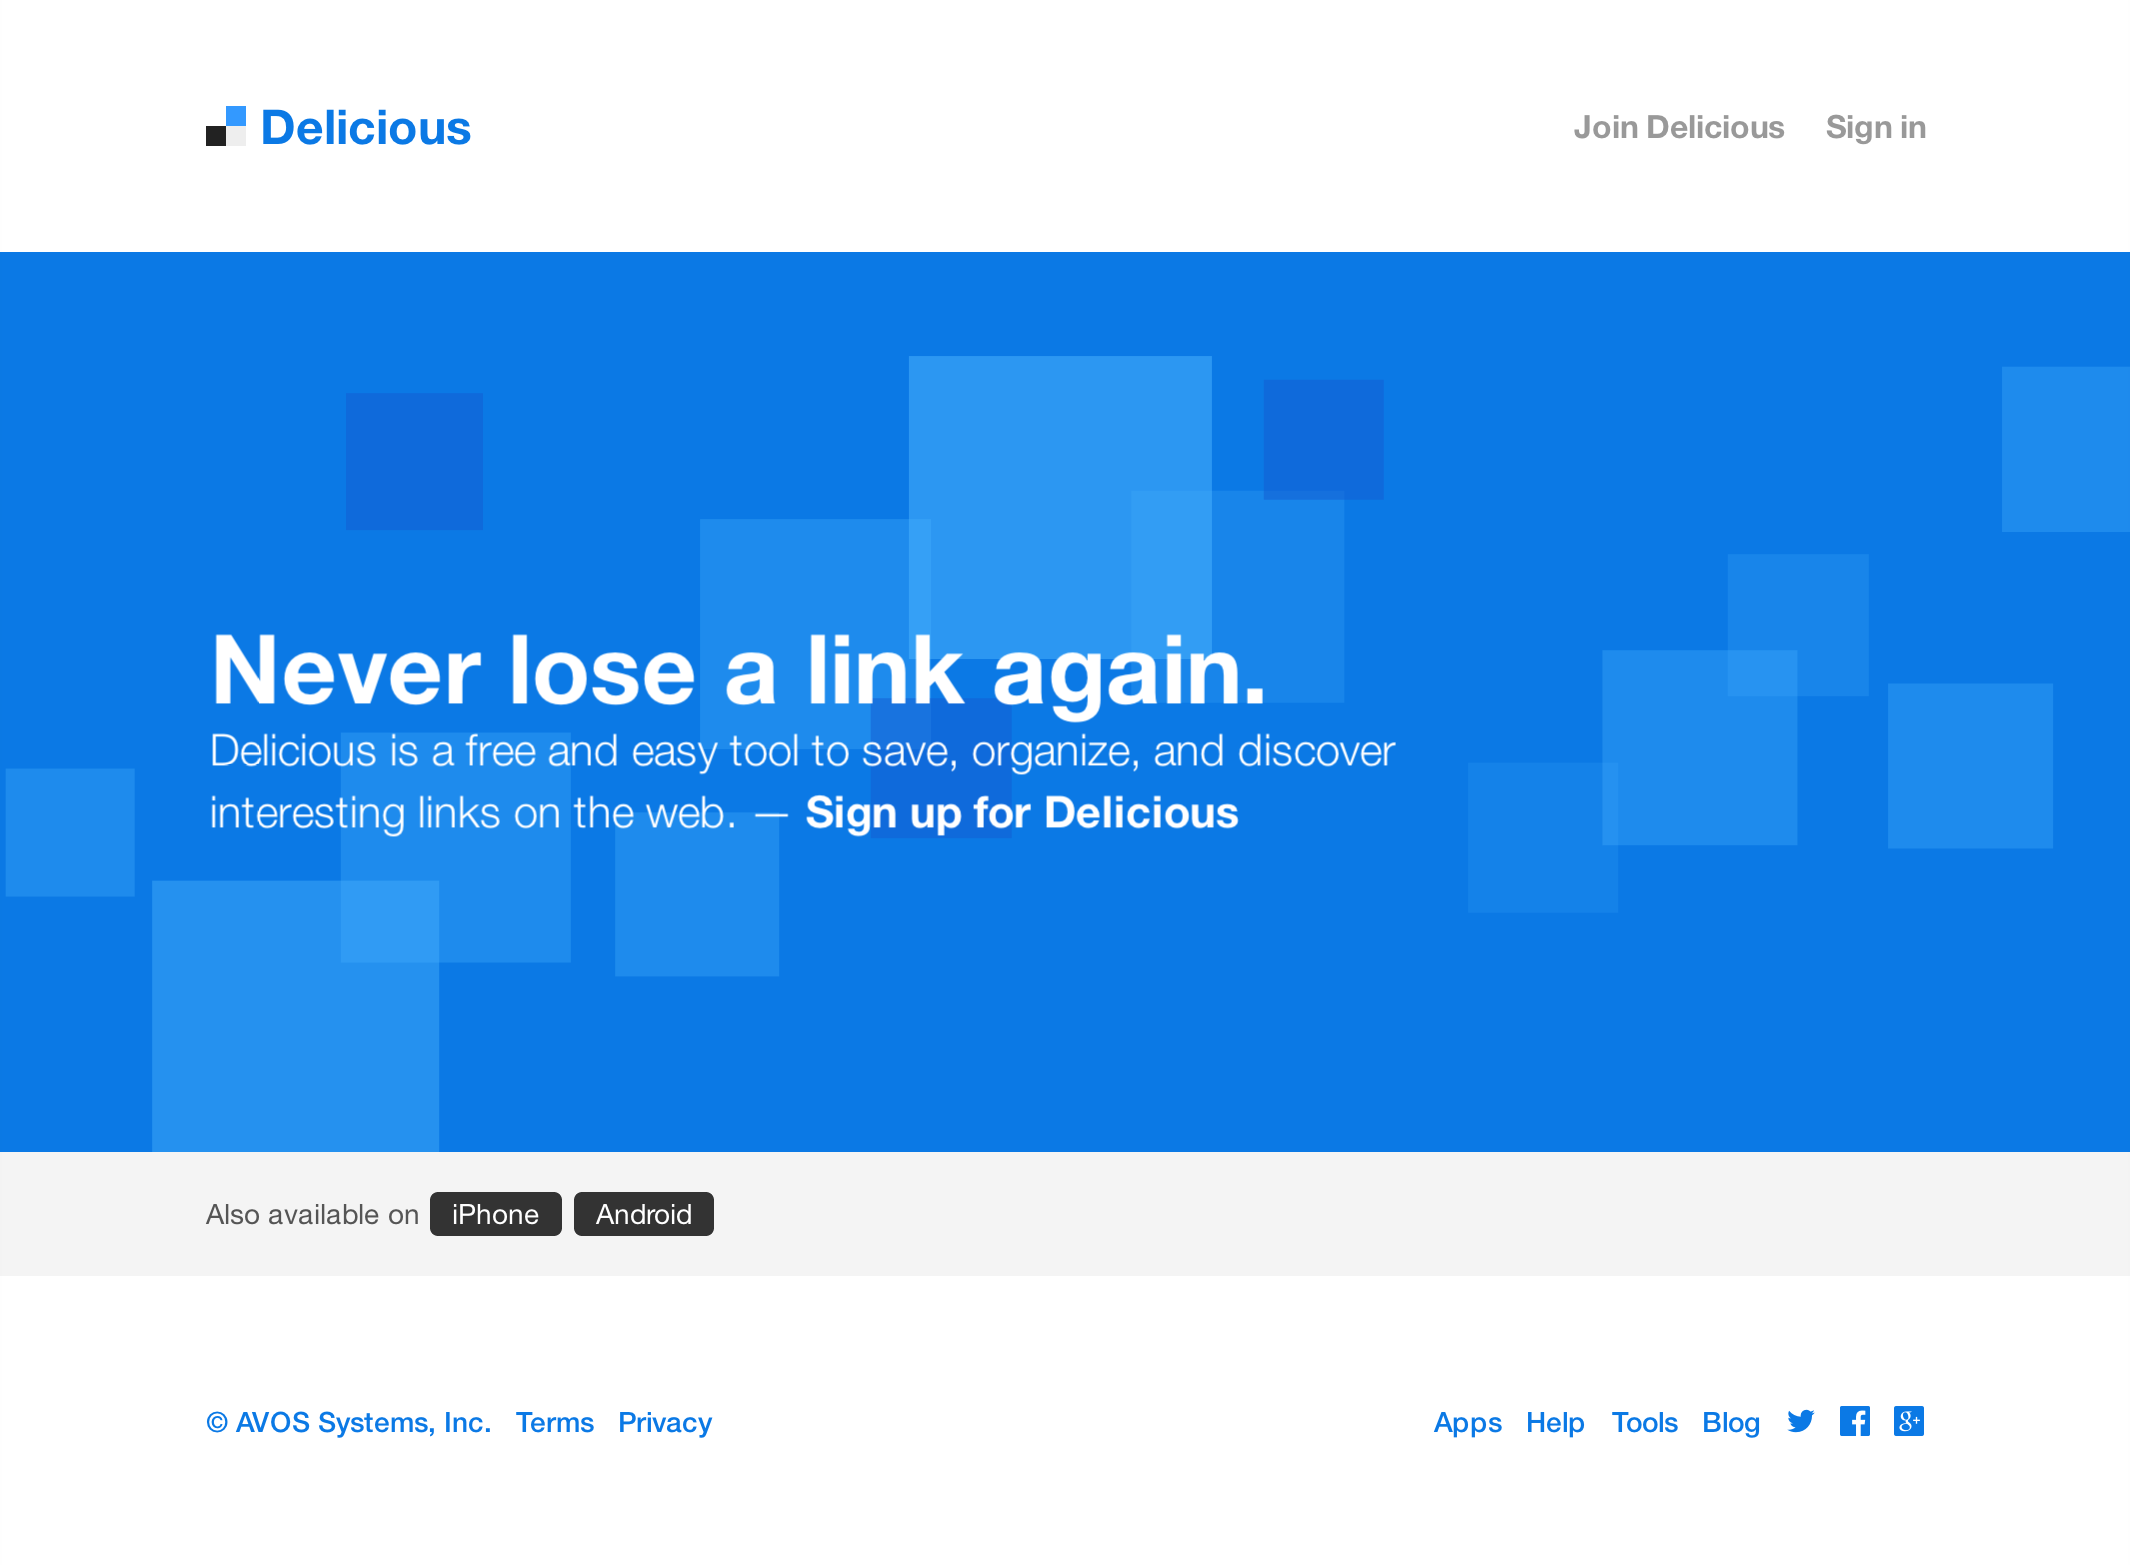 Delicious Landing Page (Mouseover)